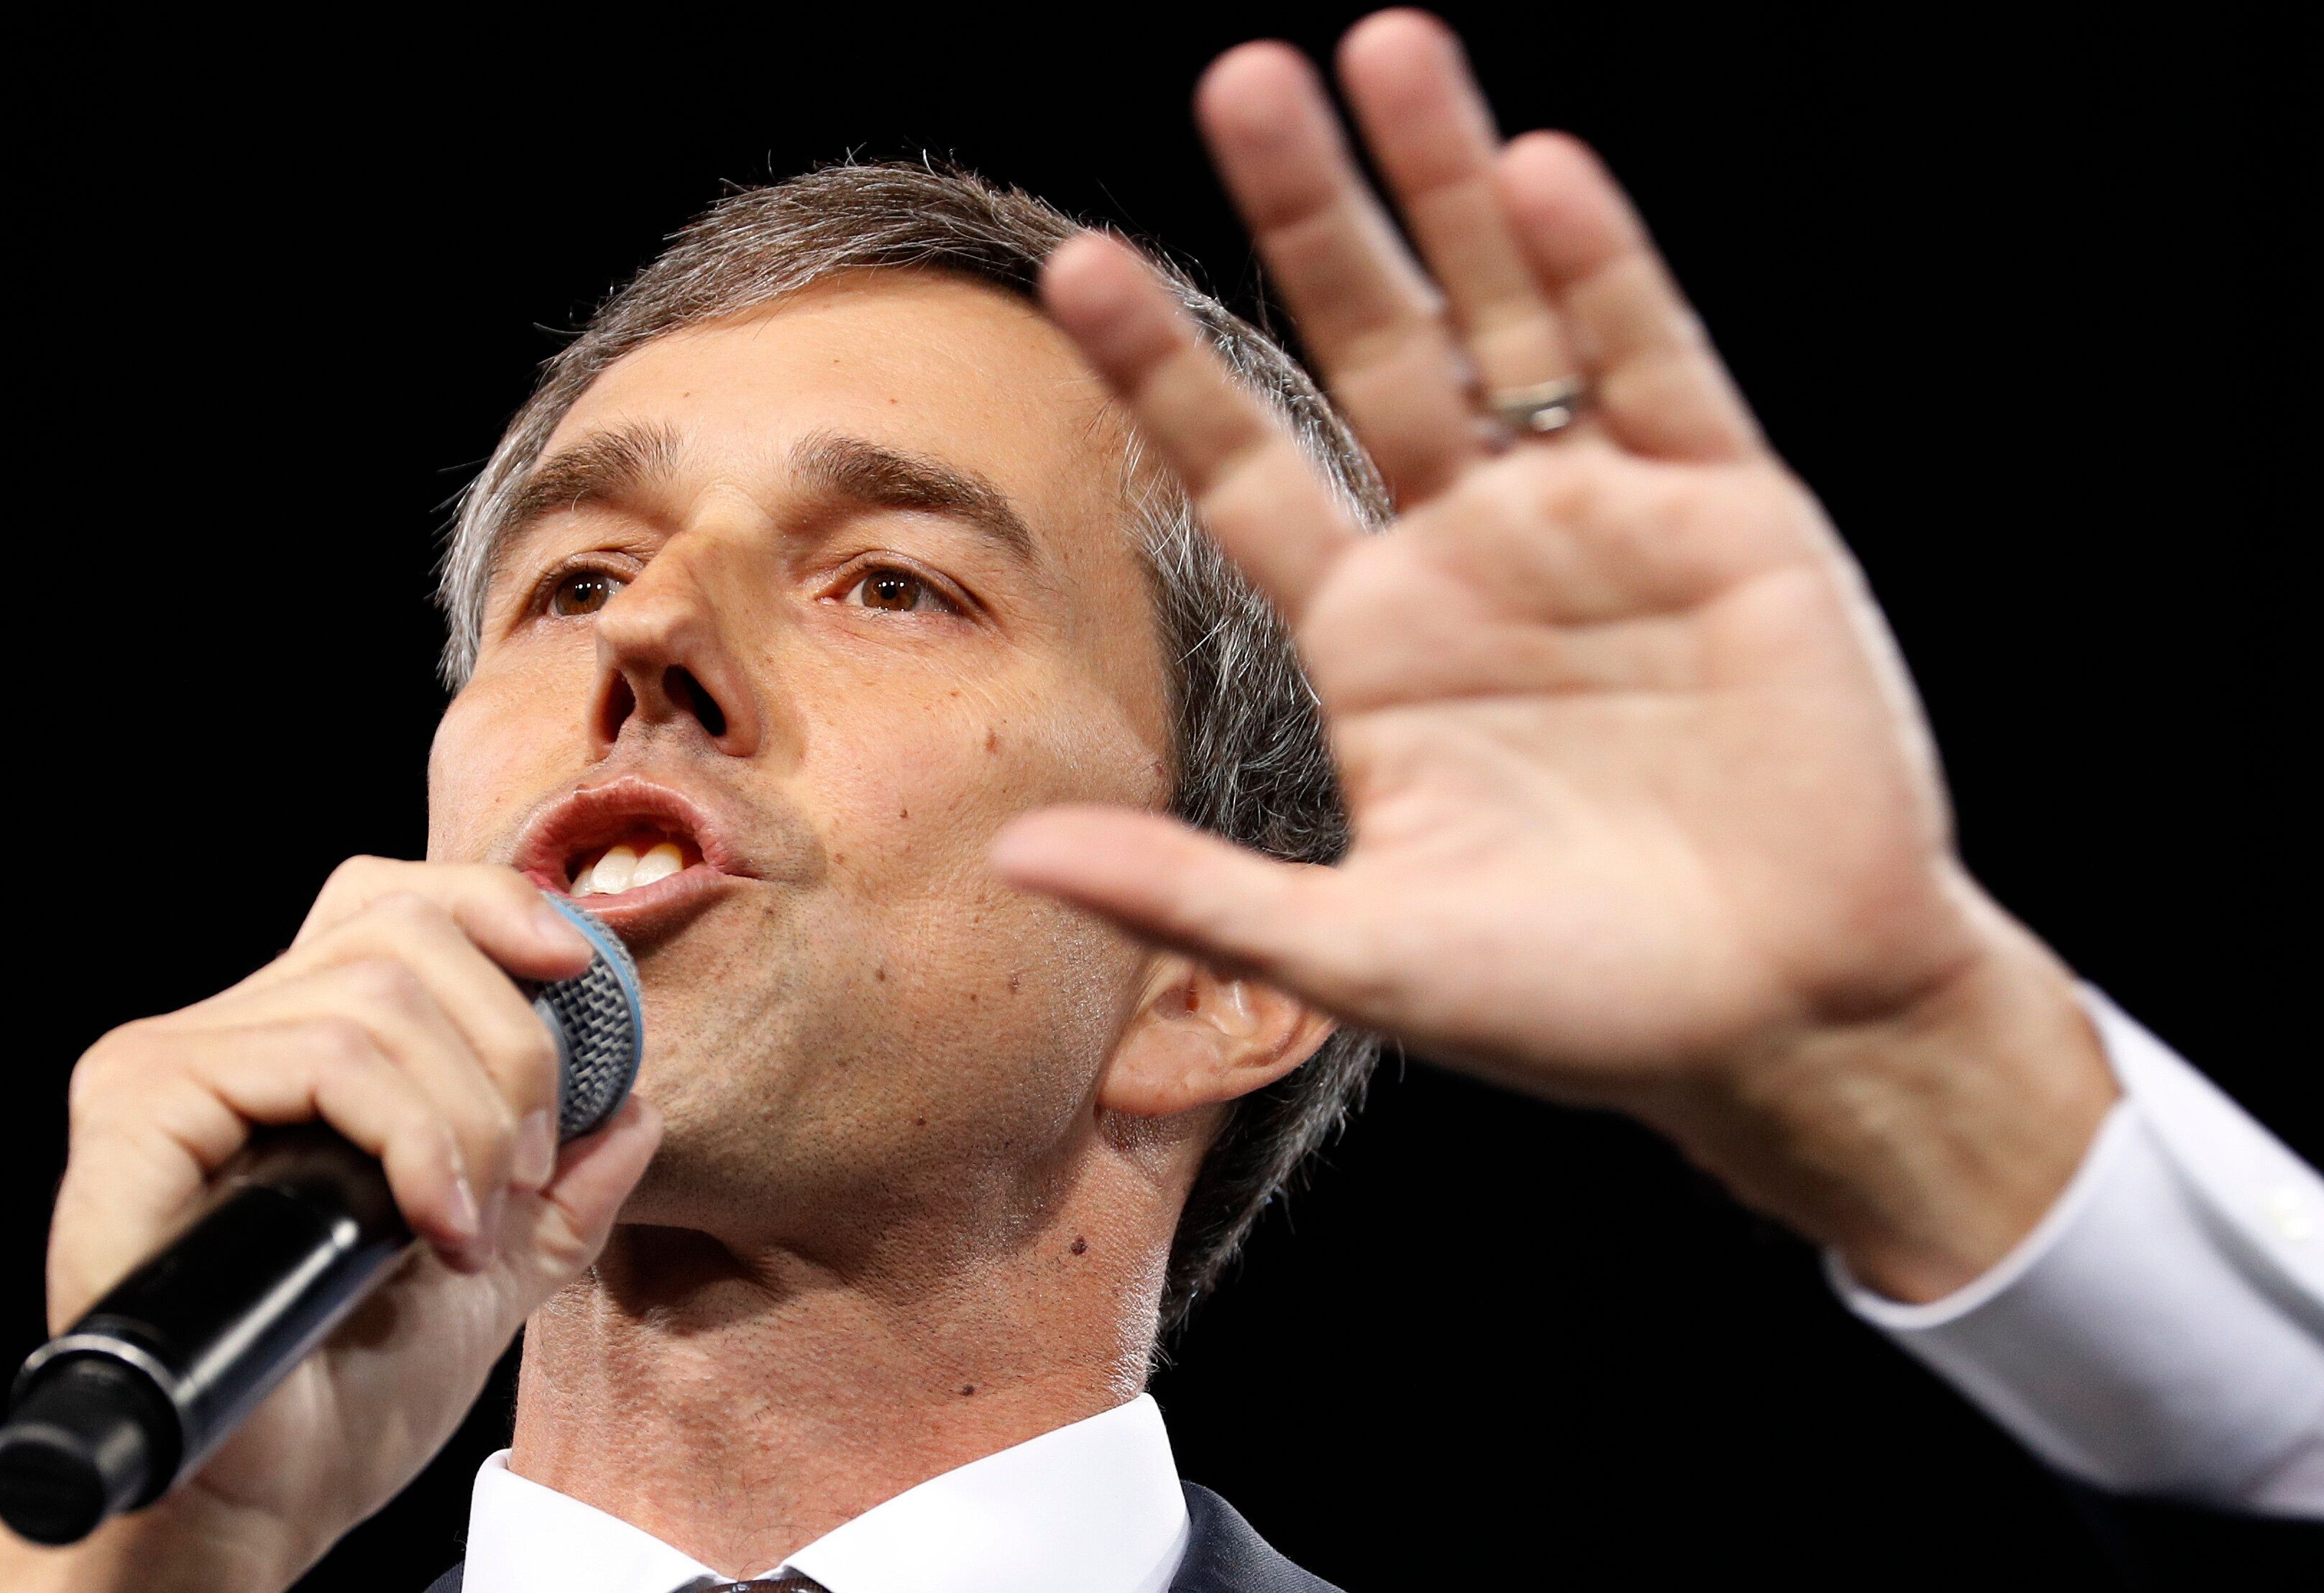 Democratic presidential candidate and former Texas congressman Beto O'Rourke speaks at a Service Employees International Union forum on labor issues, Saturday, April 27, 2019, in Las Vegas. (AP Photo/John Locher)